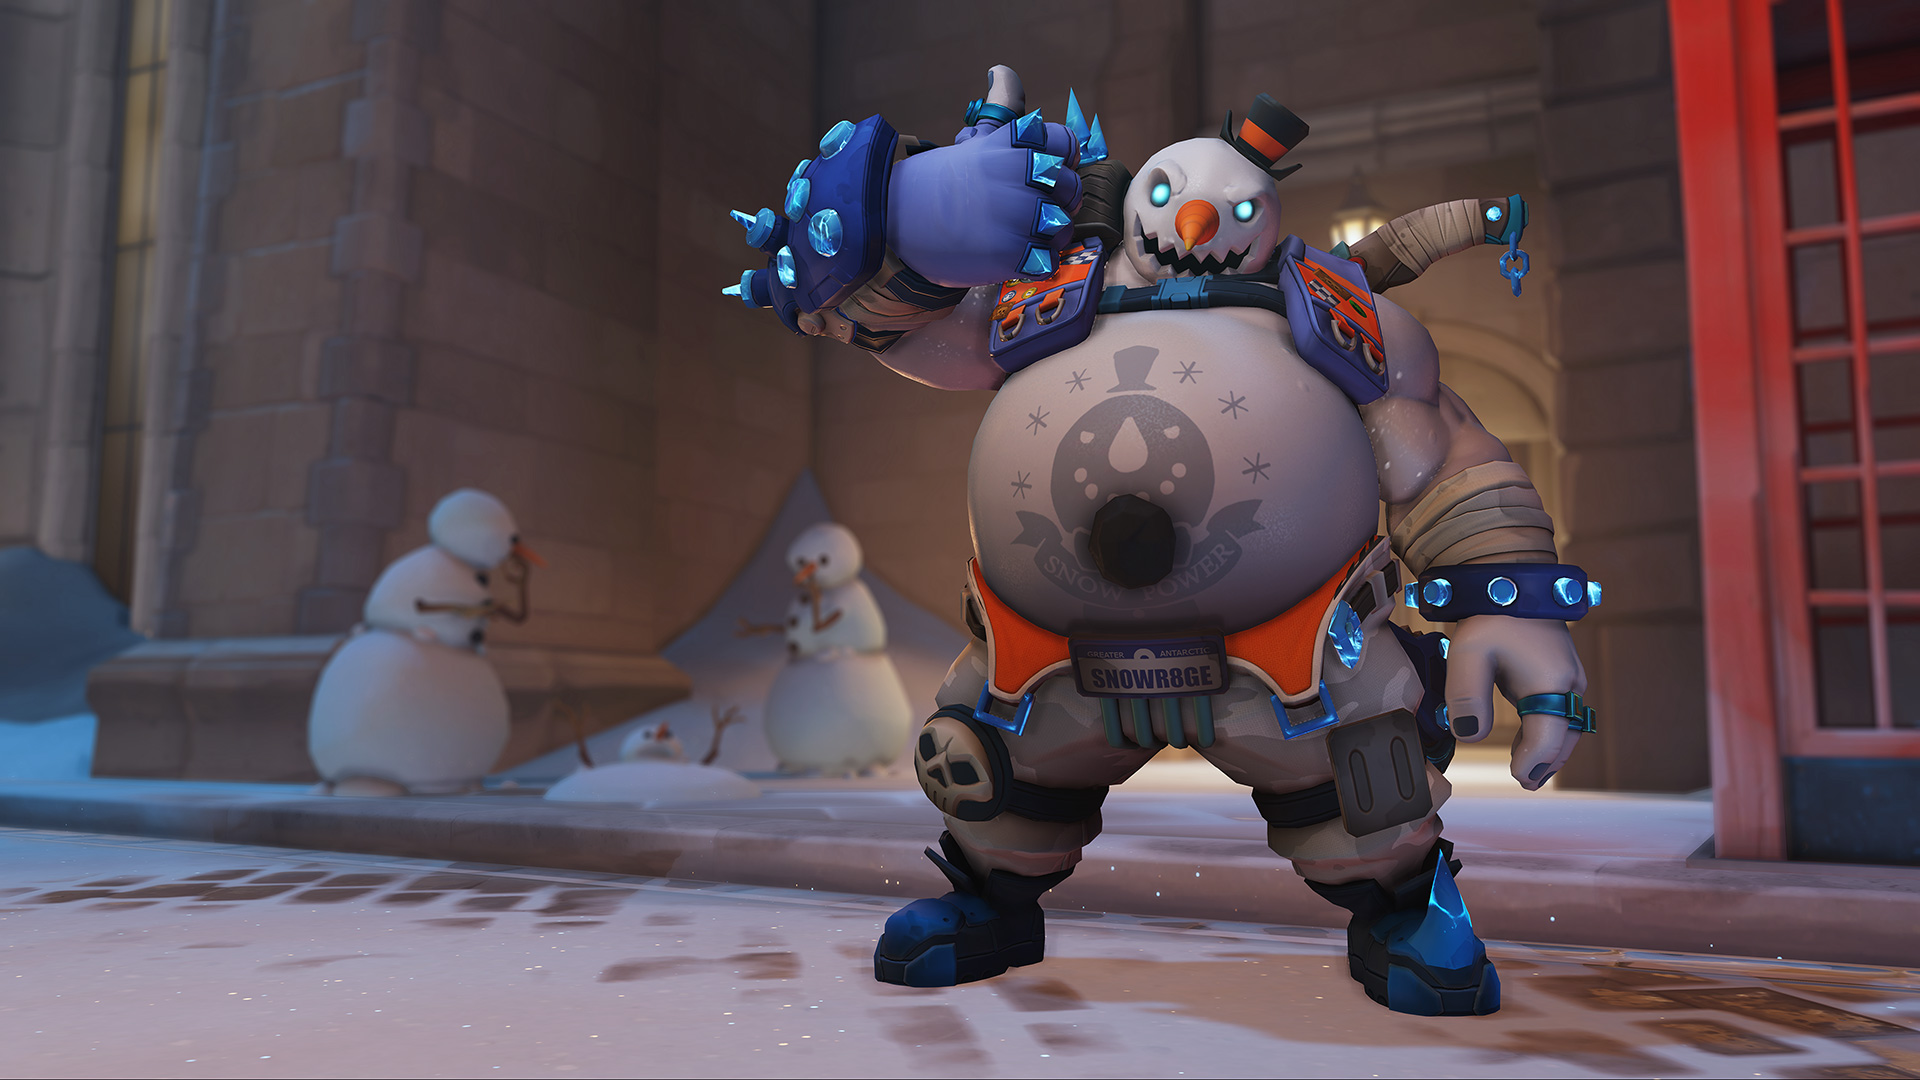 Frosty Roadhog skin